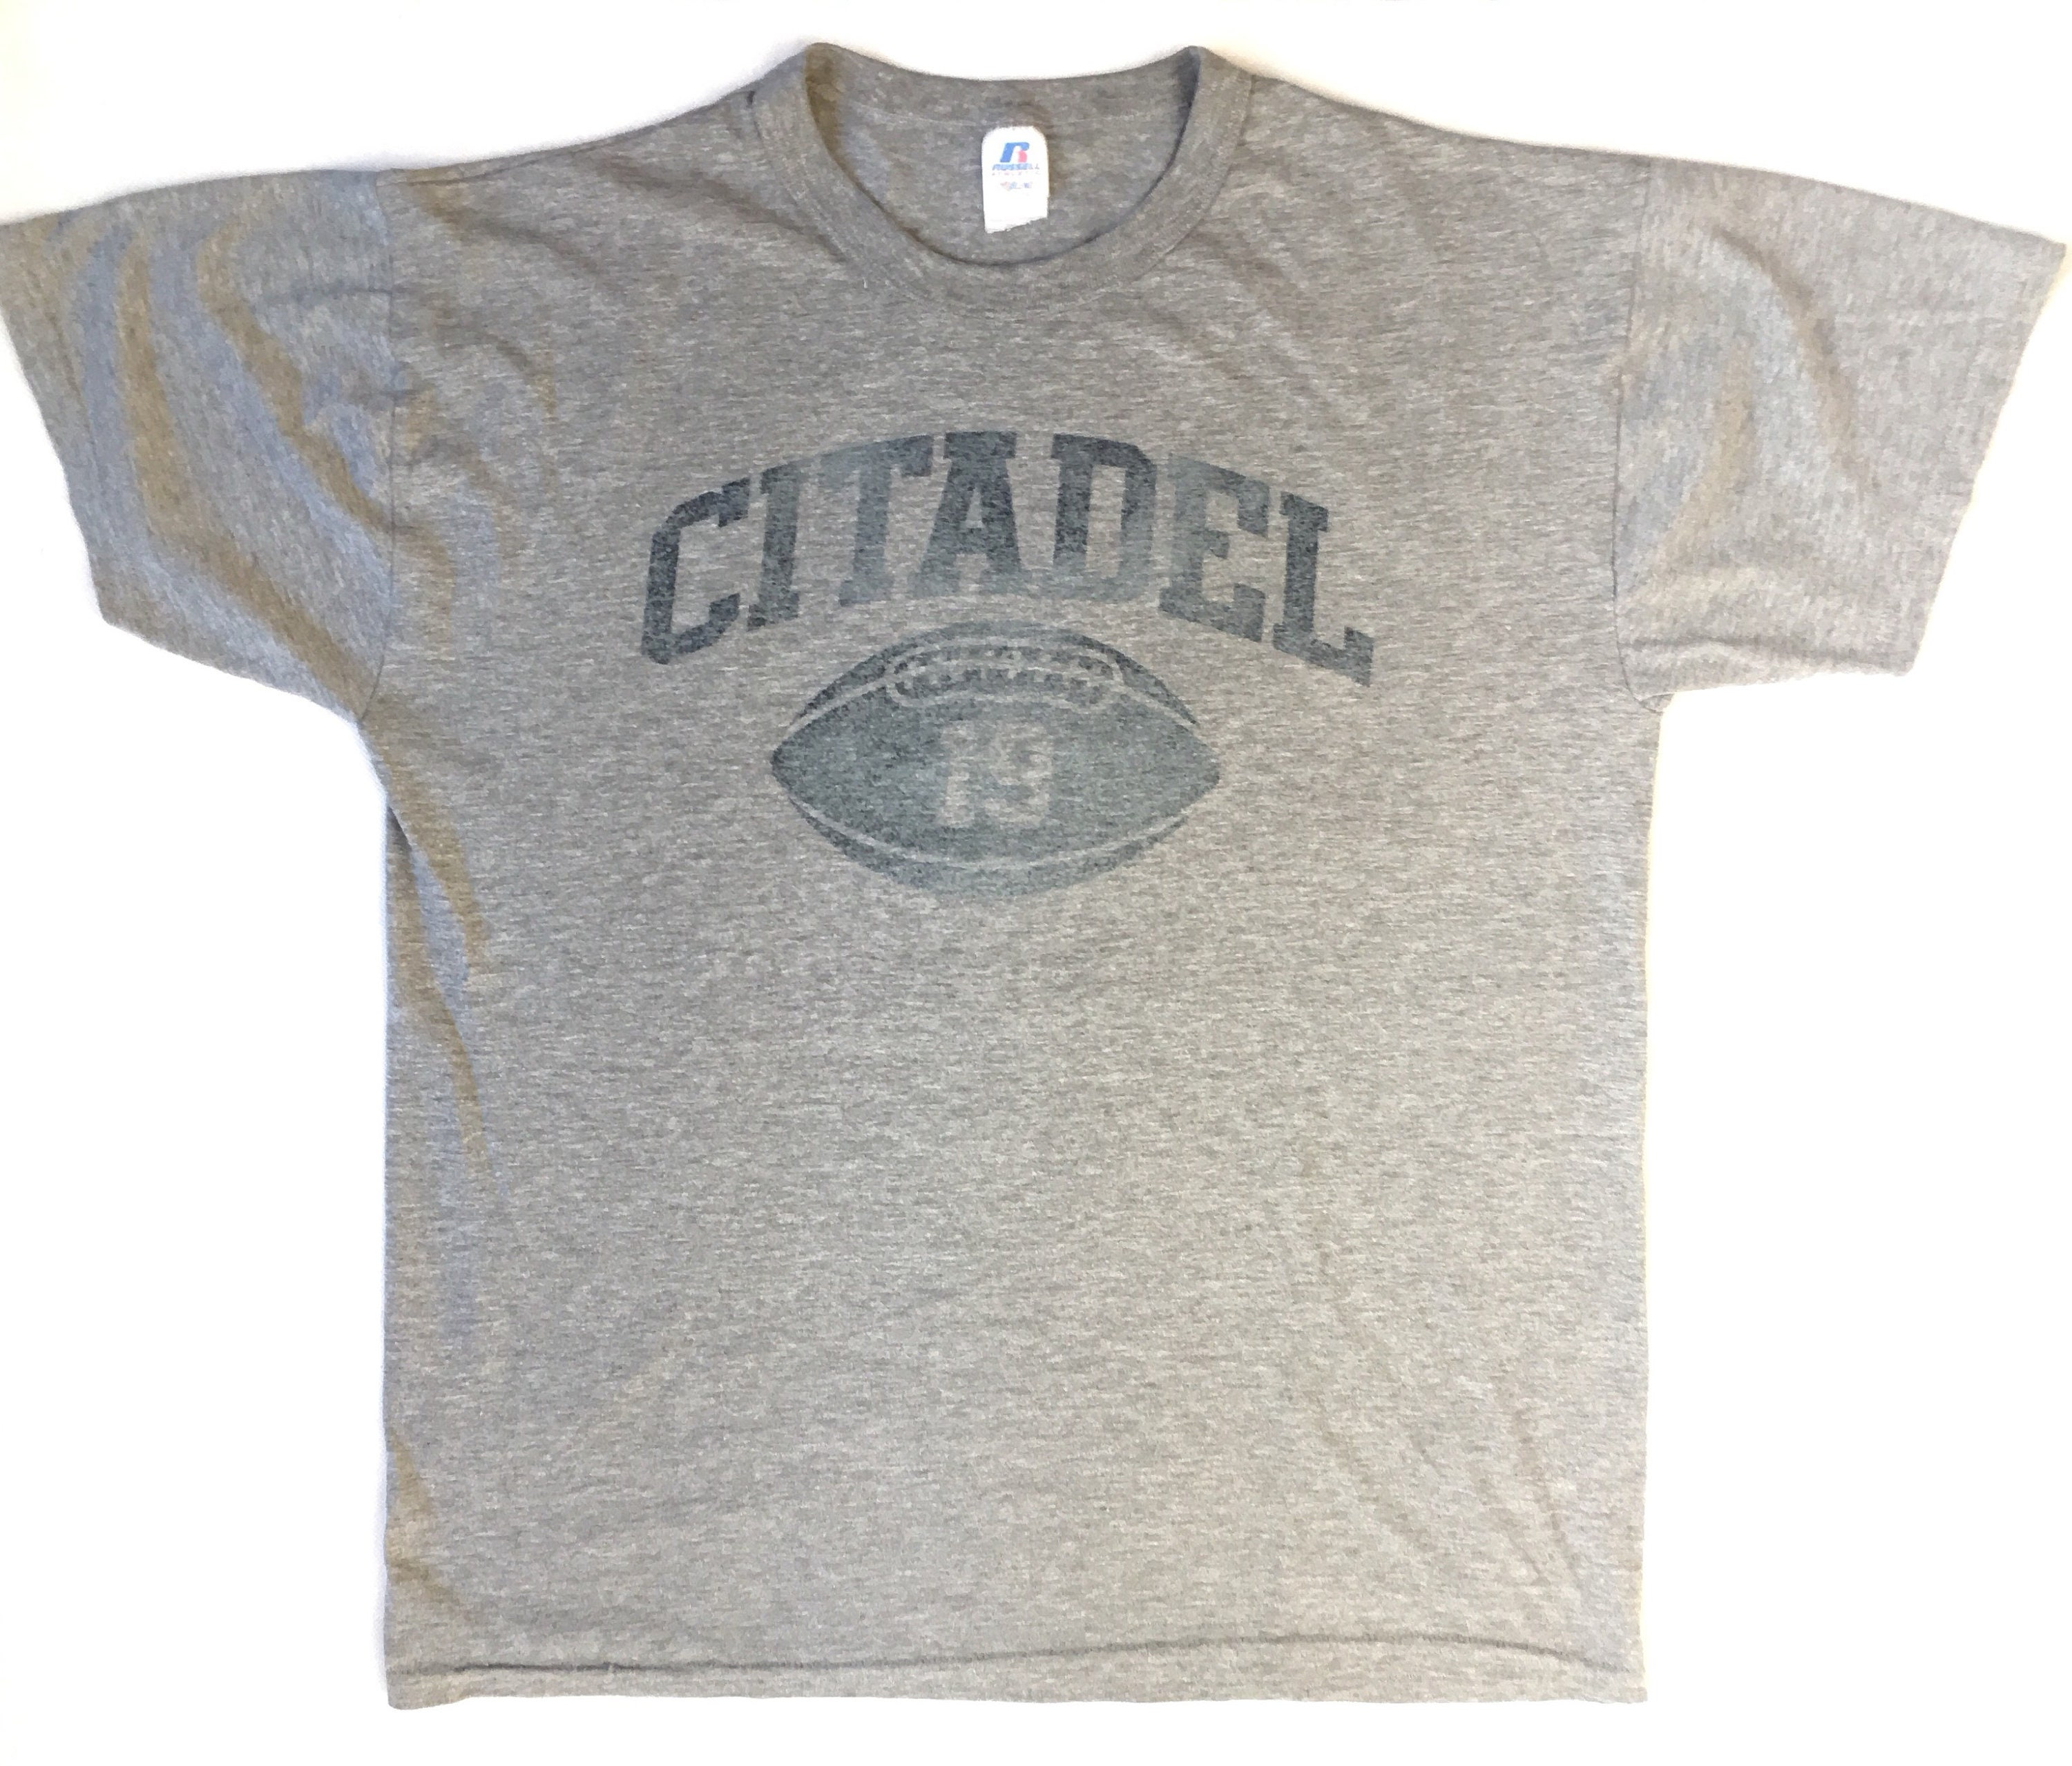 FOOTBALL Russell Crewneck Sweatshirt